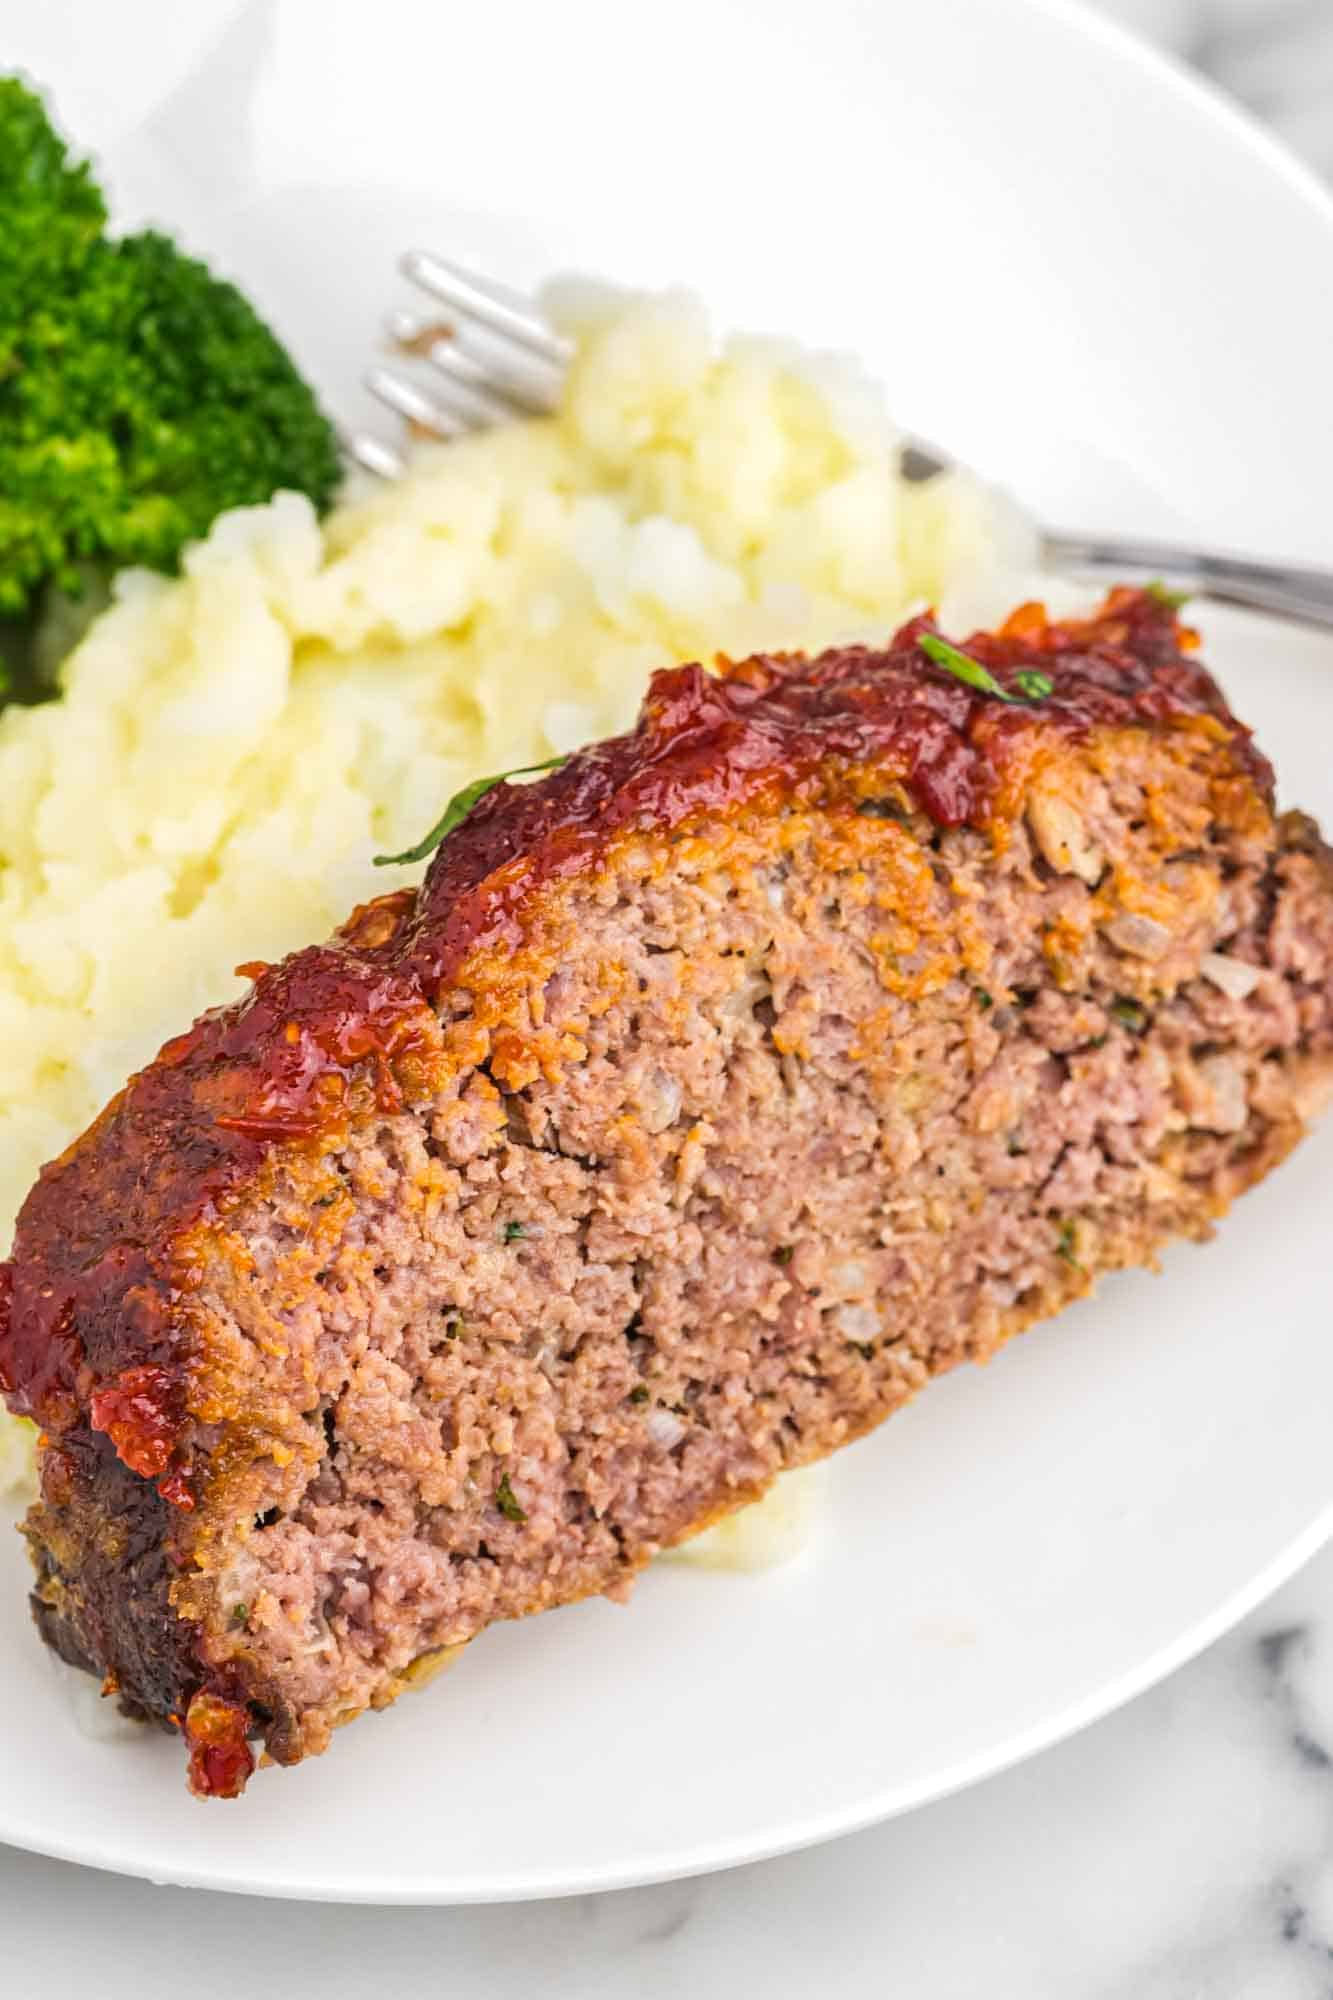 A slice of meatload served with mashed potatoes and steamed broccoli